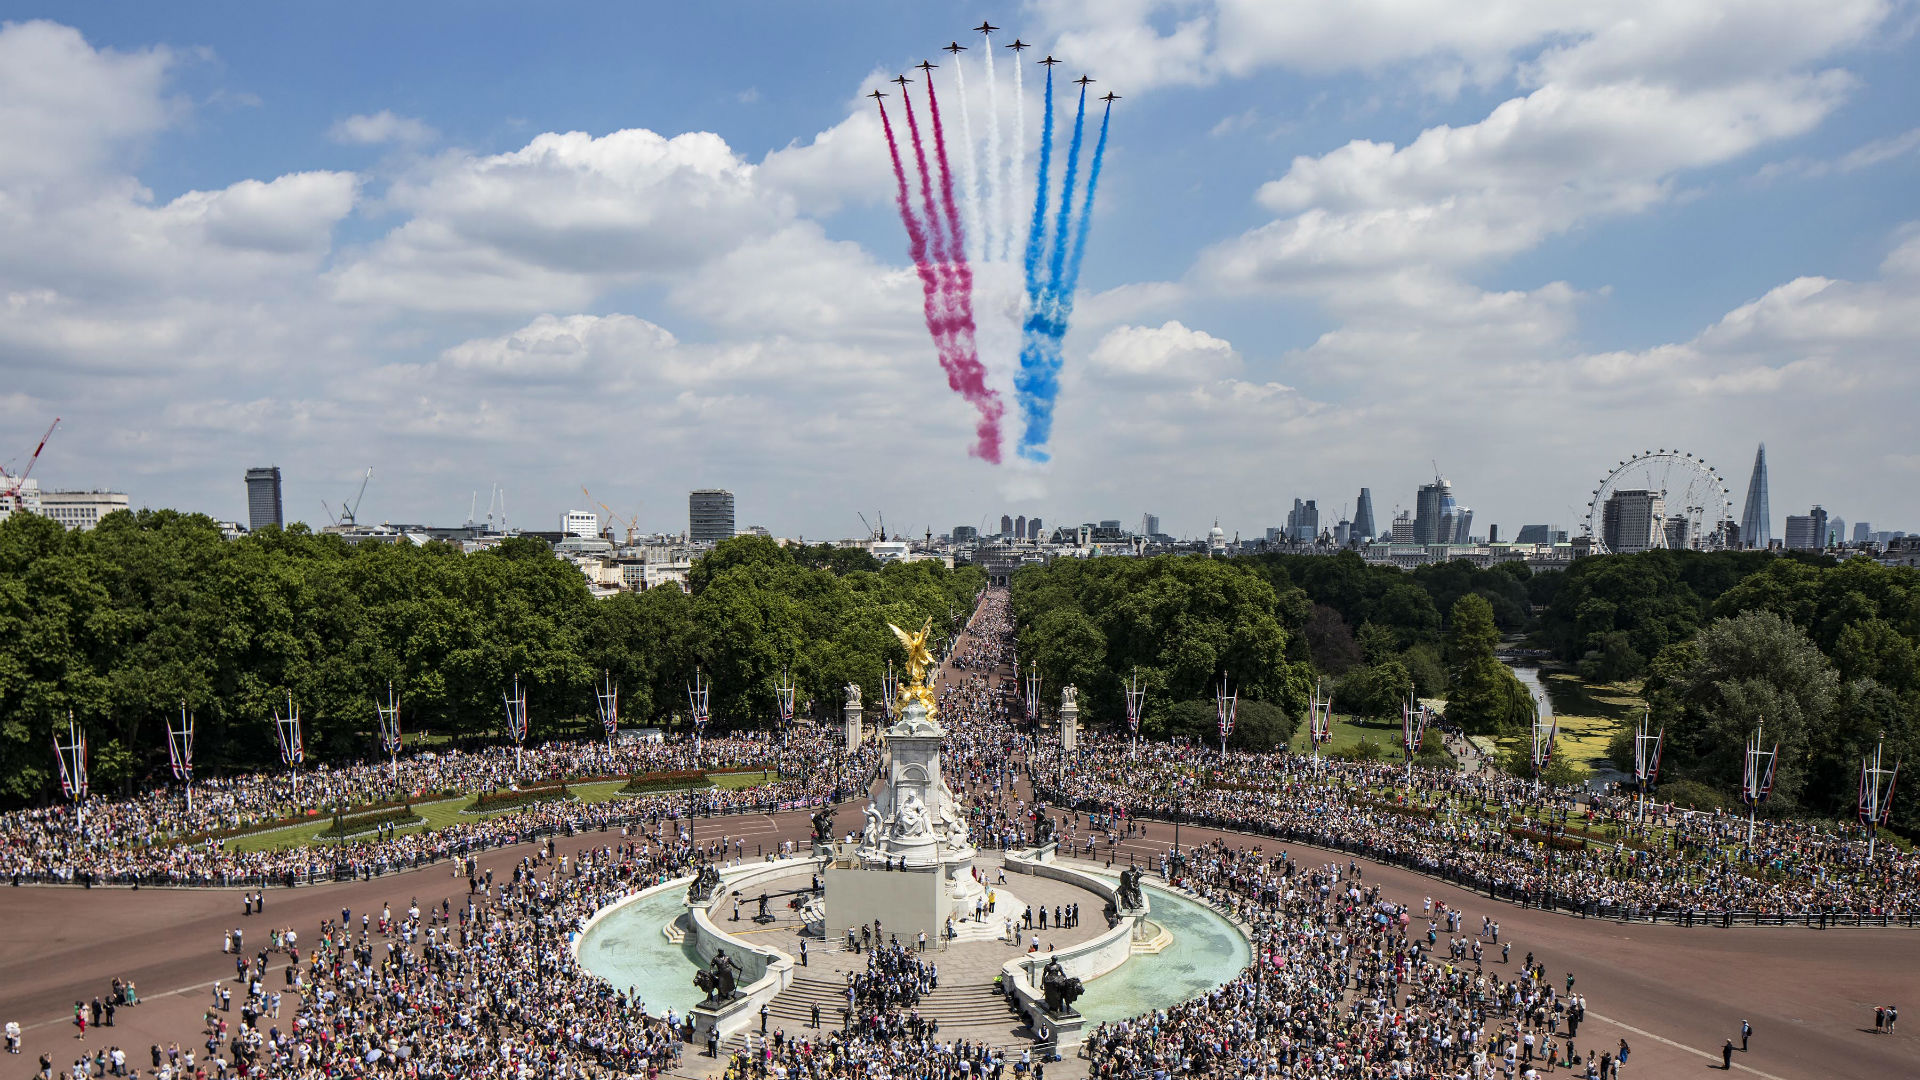 Royal Air Force flypast takes place over Buckingham Palace